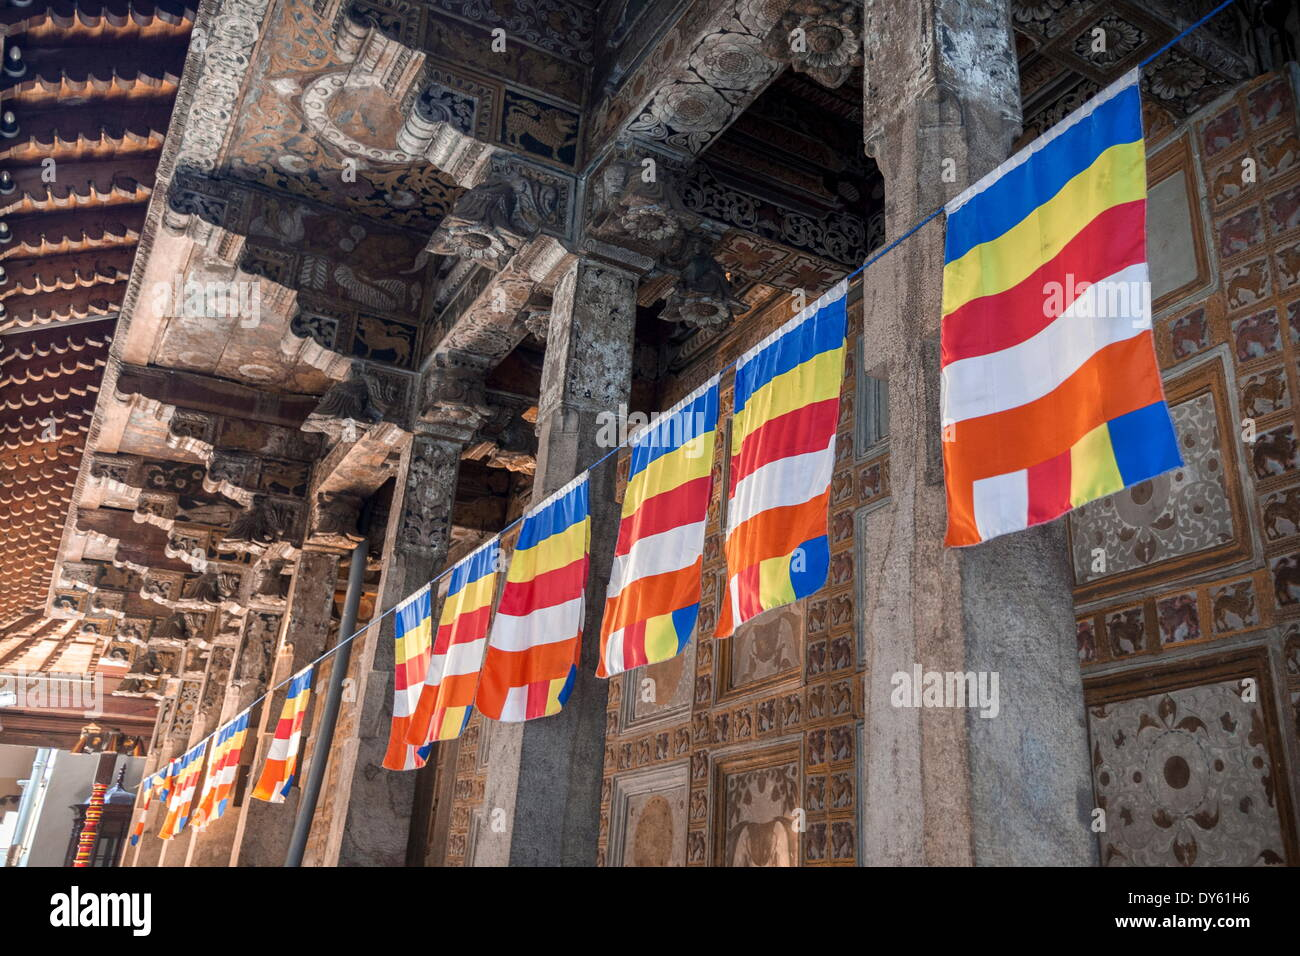 Colourful Buddhist flags adorning columns, Temple of the Sacred Tooth Relic, UNESCO World Heritage Site, Kandy, Sri Lanka, Asia - Stock Image